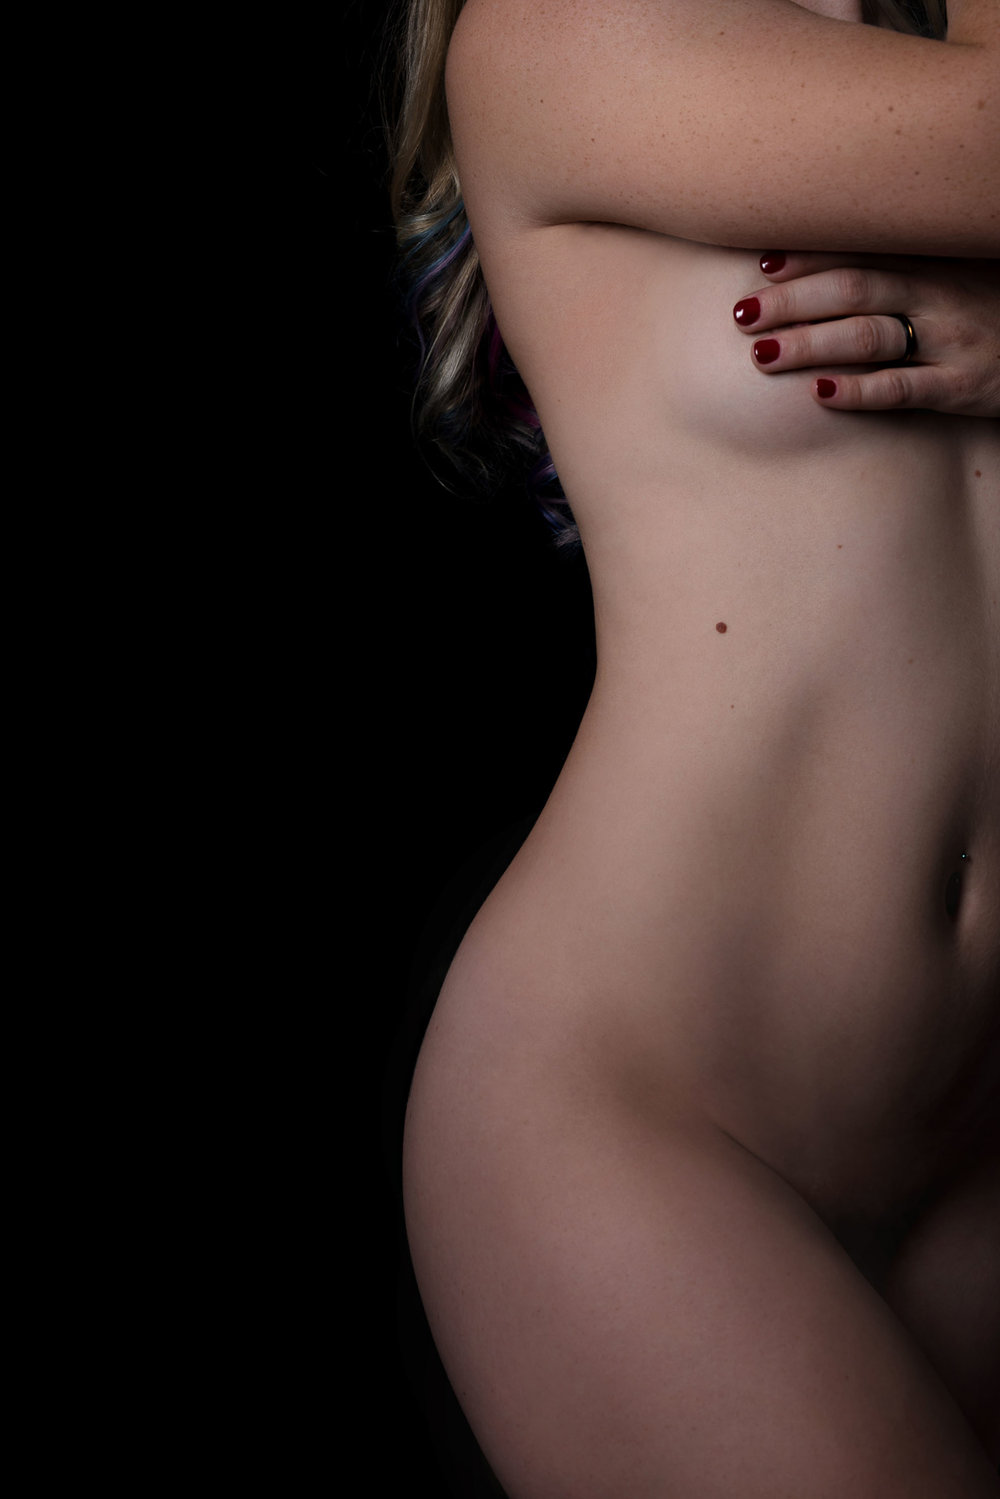 Bodyscape photography